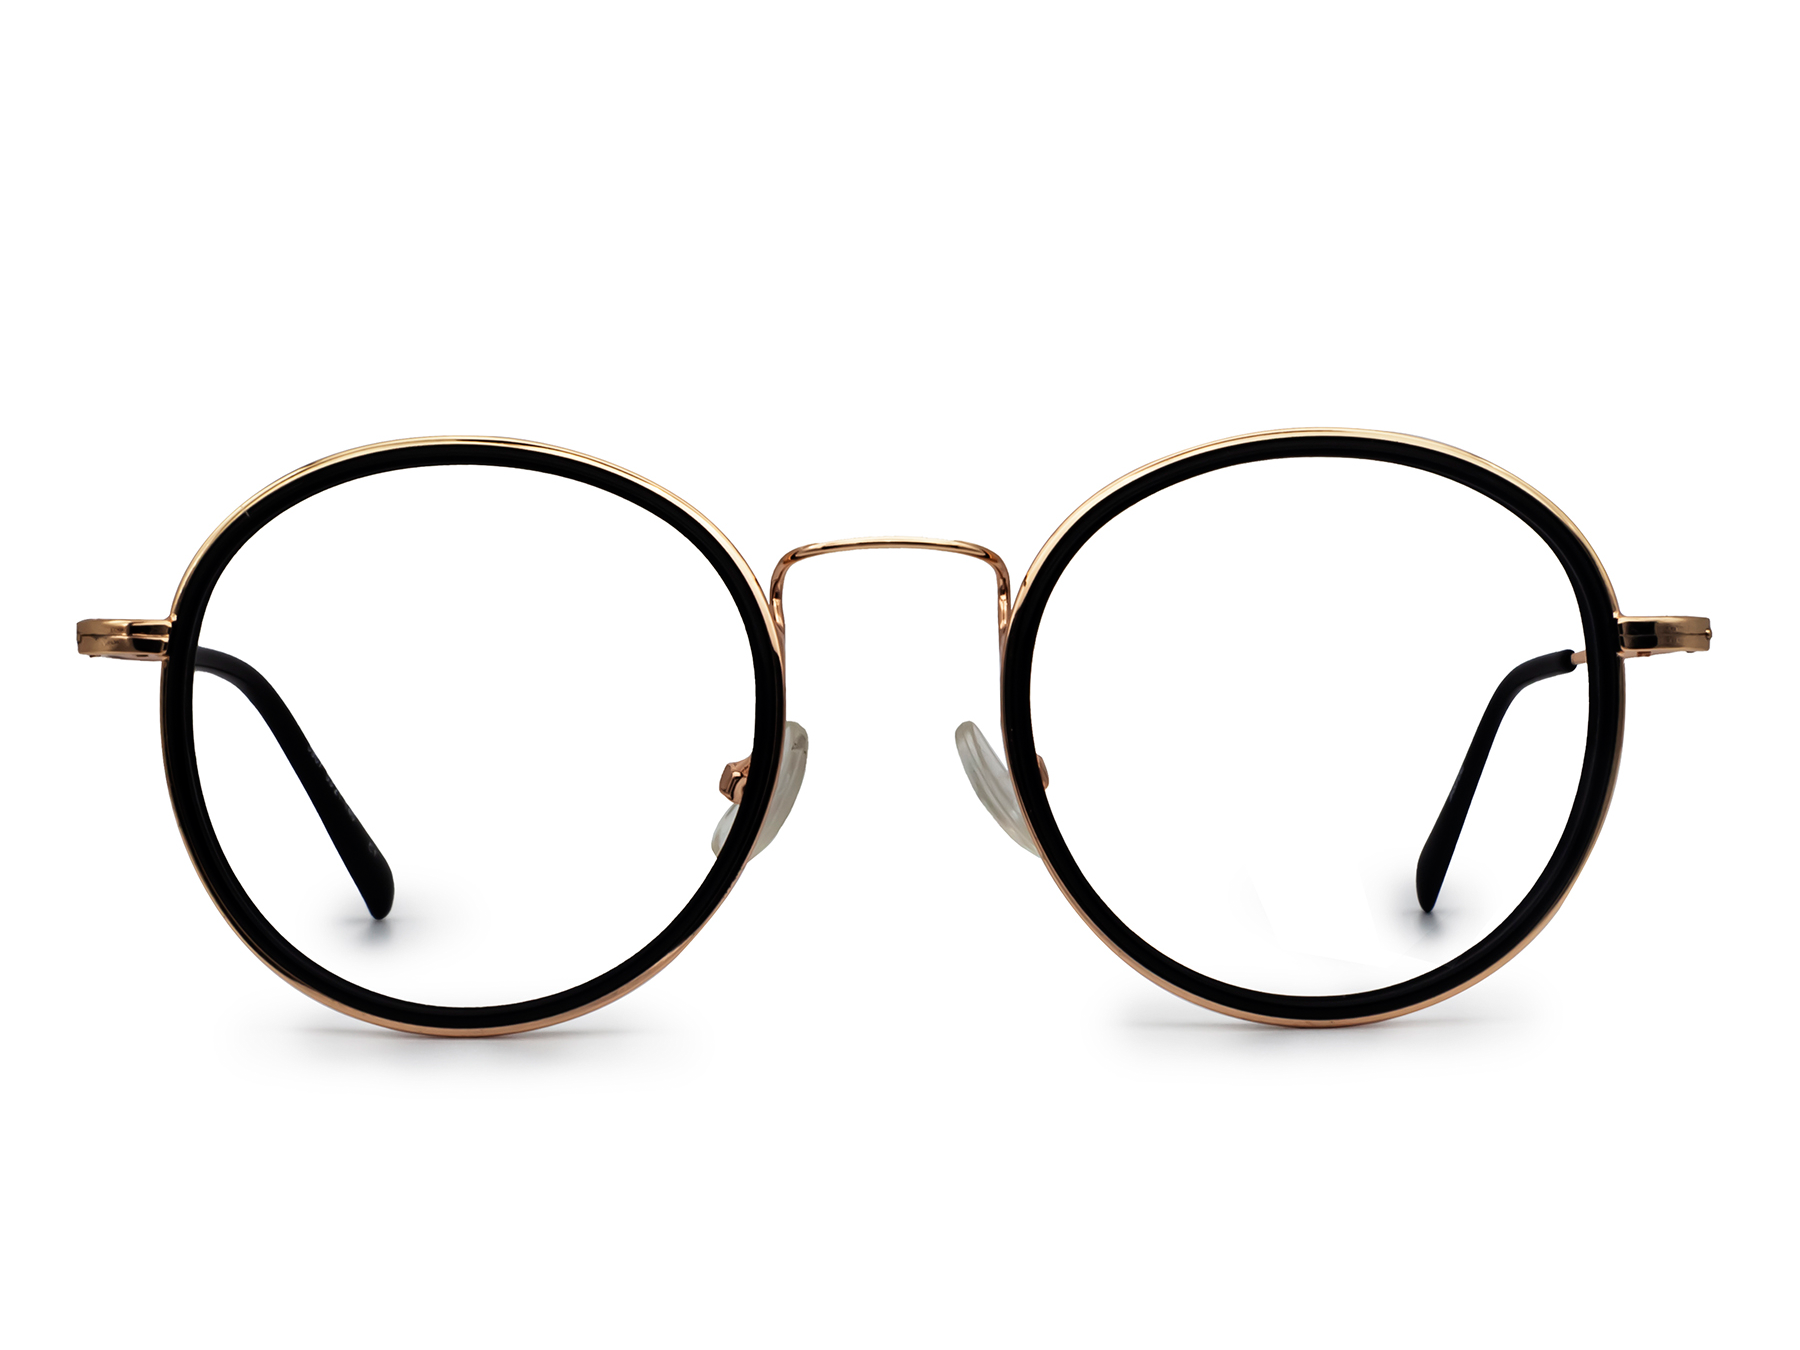 How to Select The Right Eyeglass Frame Shapes For Your Face?